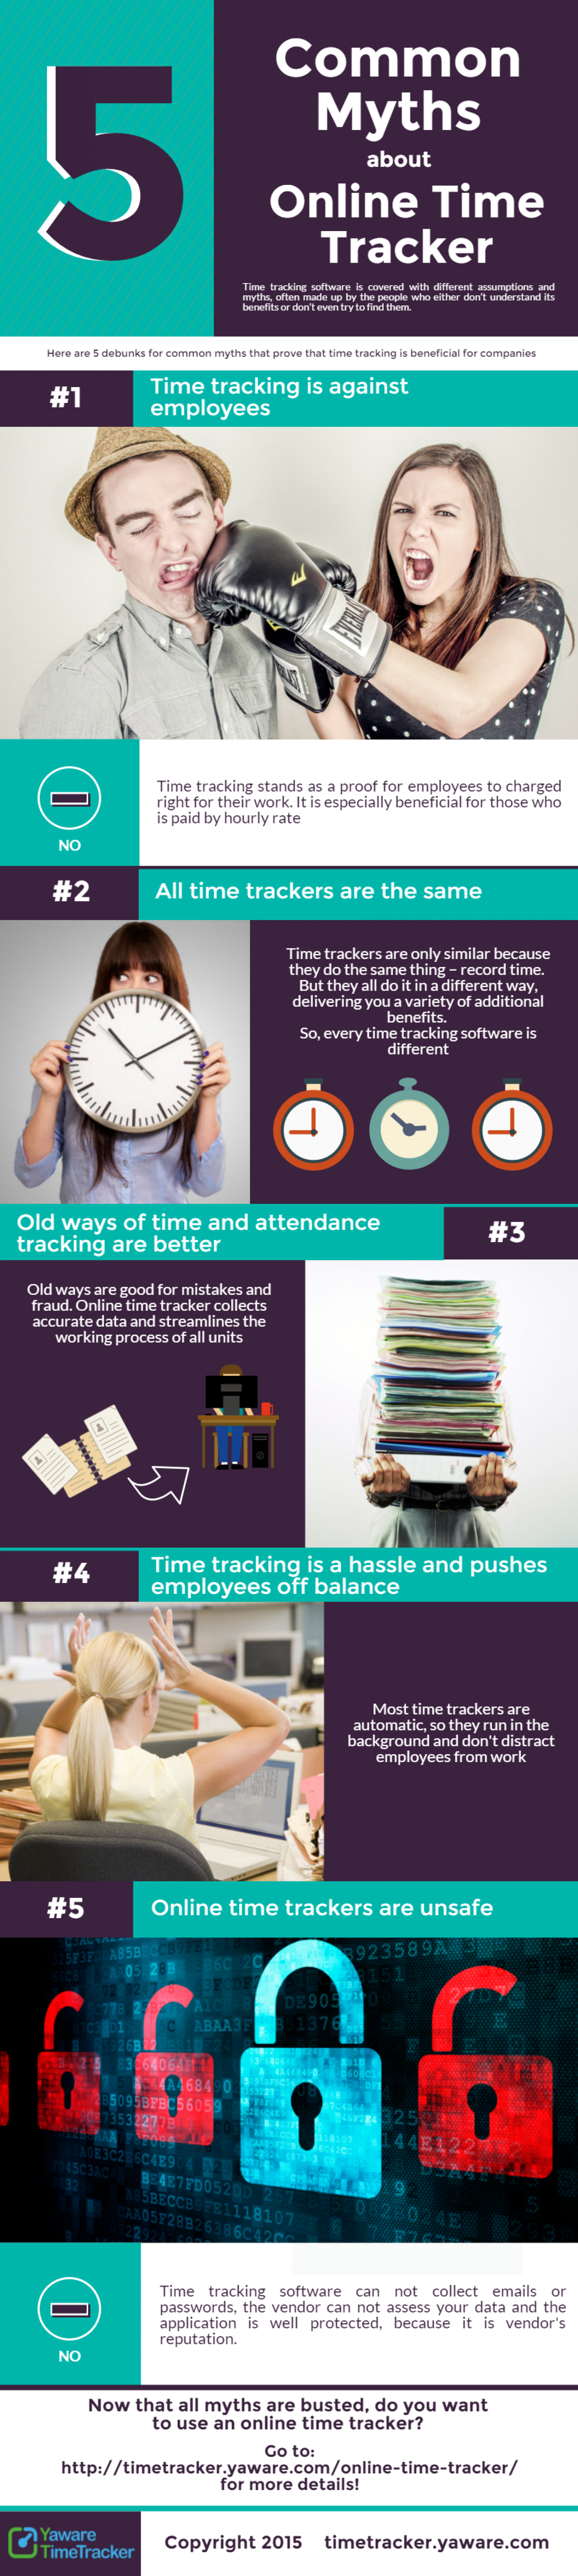 5 Myths about Online Time Tracker Infographic